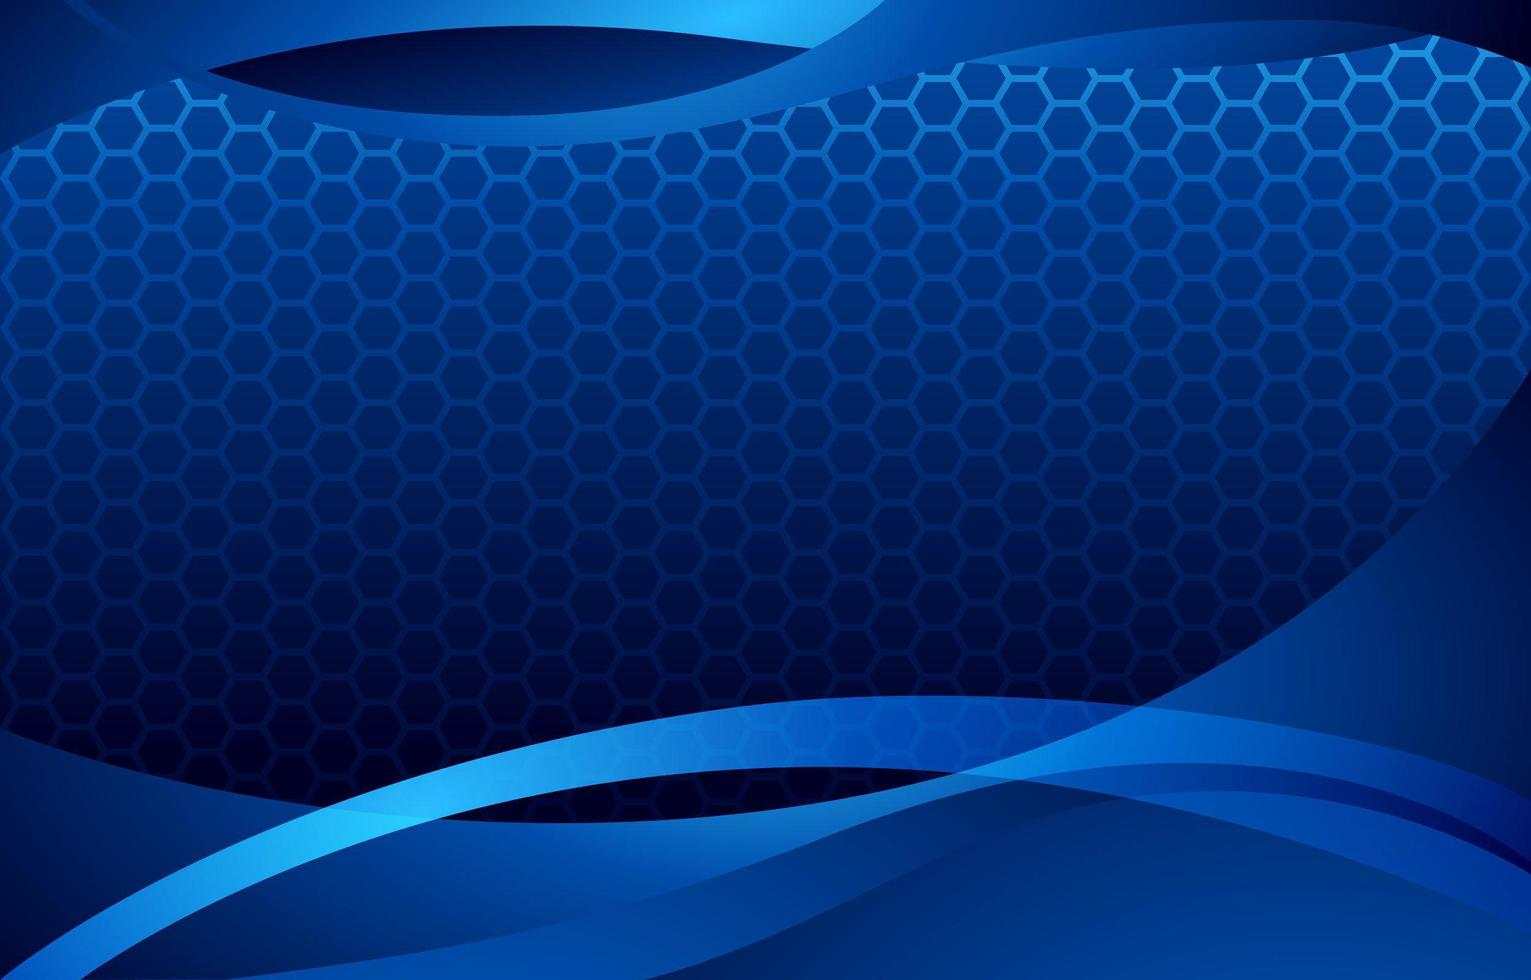 Abstract Blue Background with Wavy Curves vector